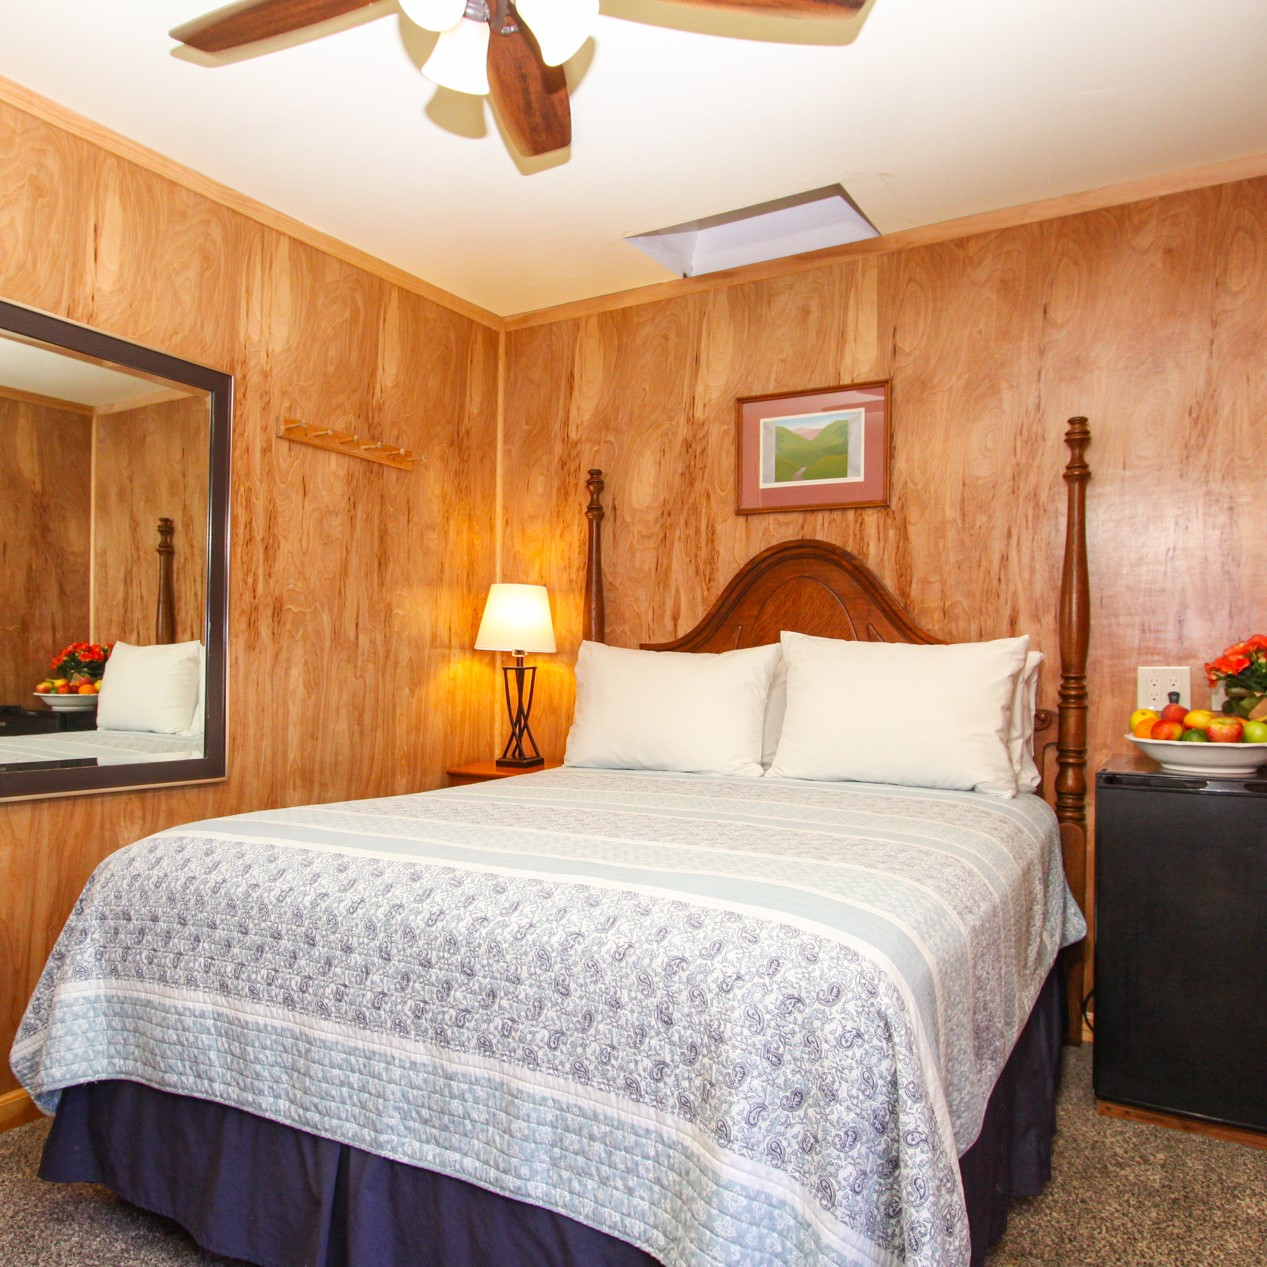 basic guest room at the woods cottages & cabins at the russian river in guerneville